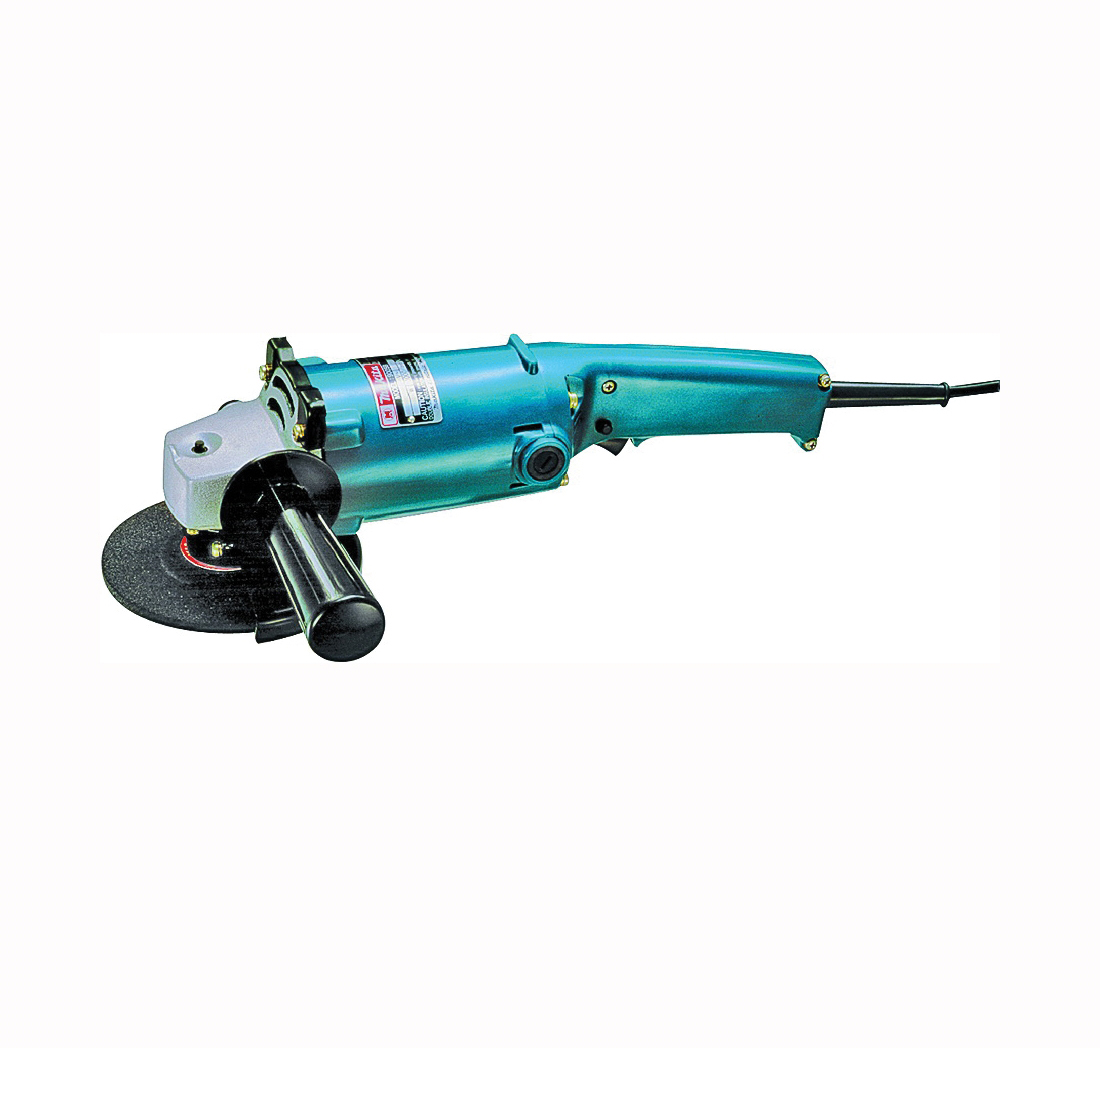 Picture of Makita 9005B Angle Grinder, 120 V, 9 A, 5 in Dia Wheel, 12000 rpm Speed